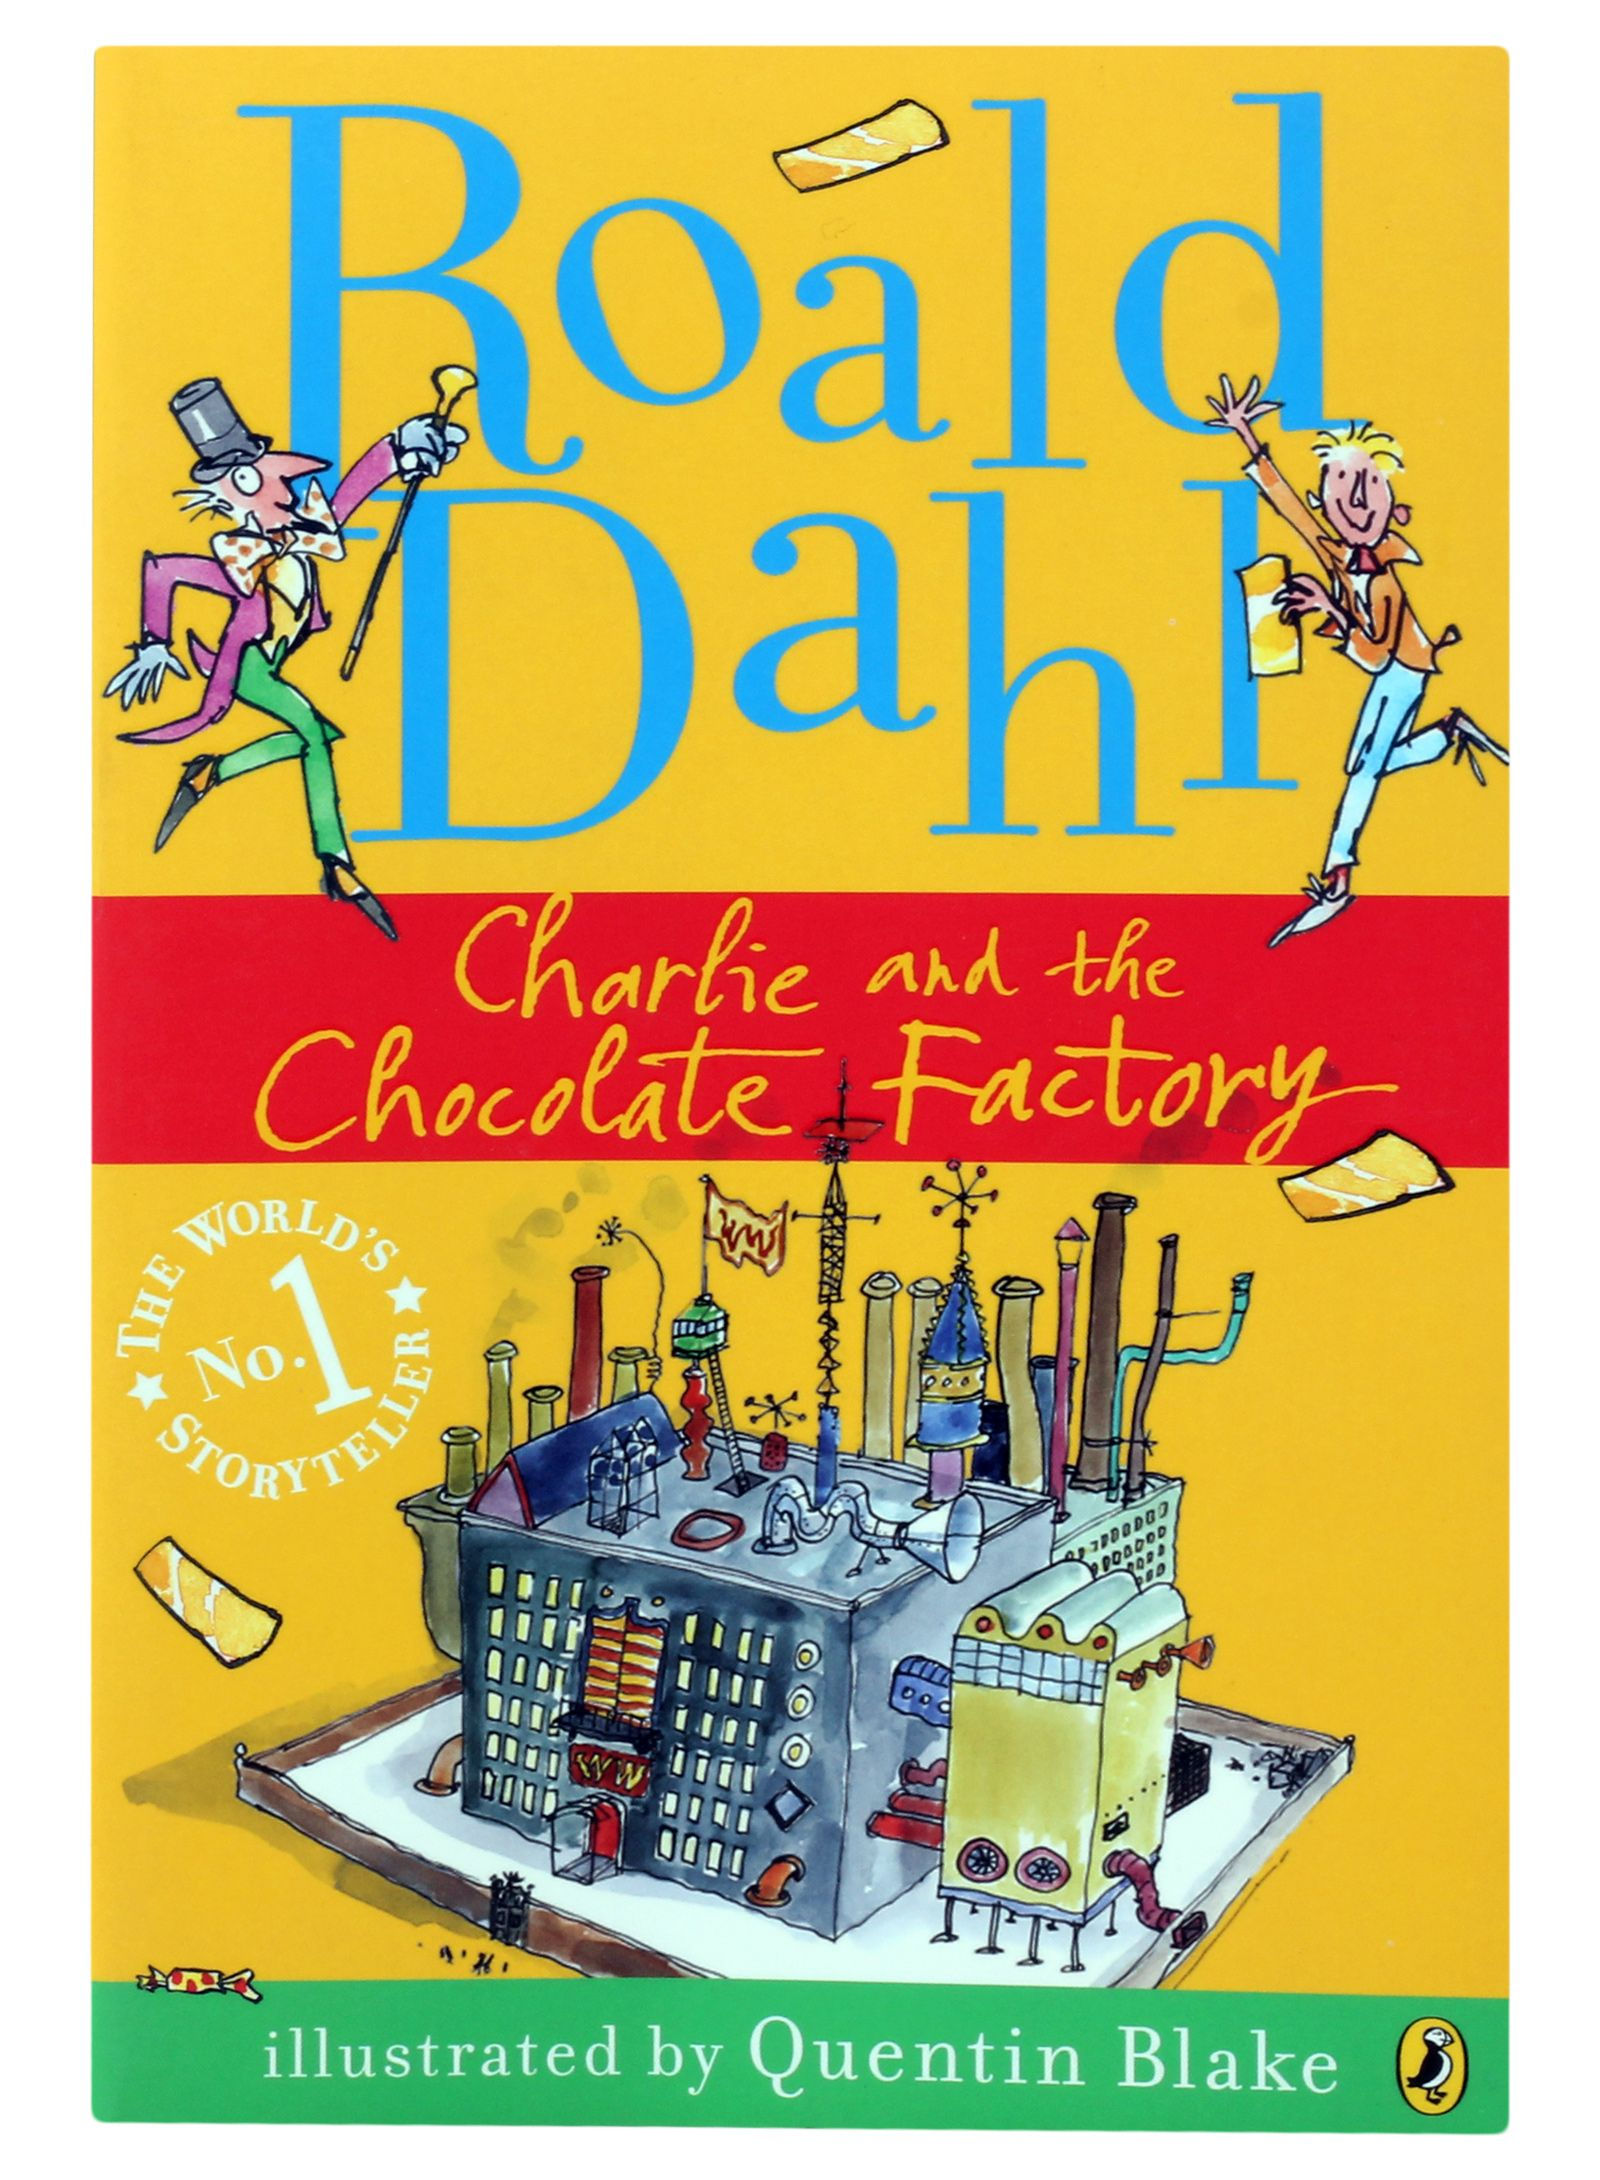 Charlie and the Chocolate Factory | © Puffin